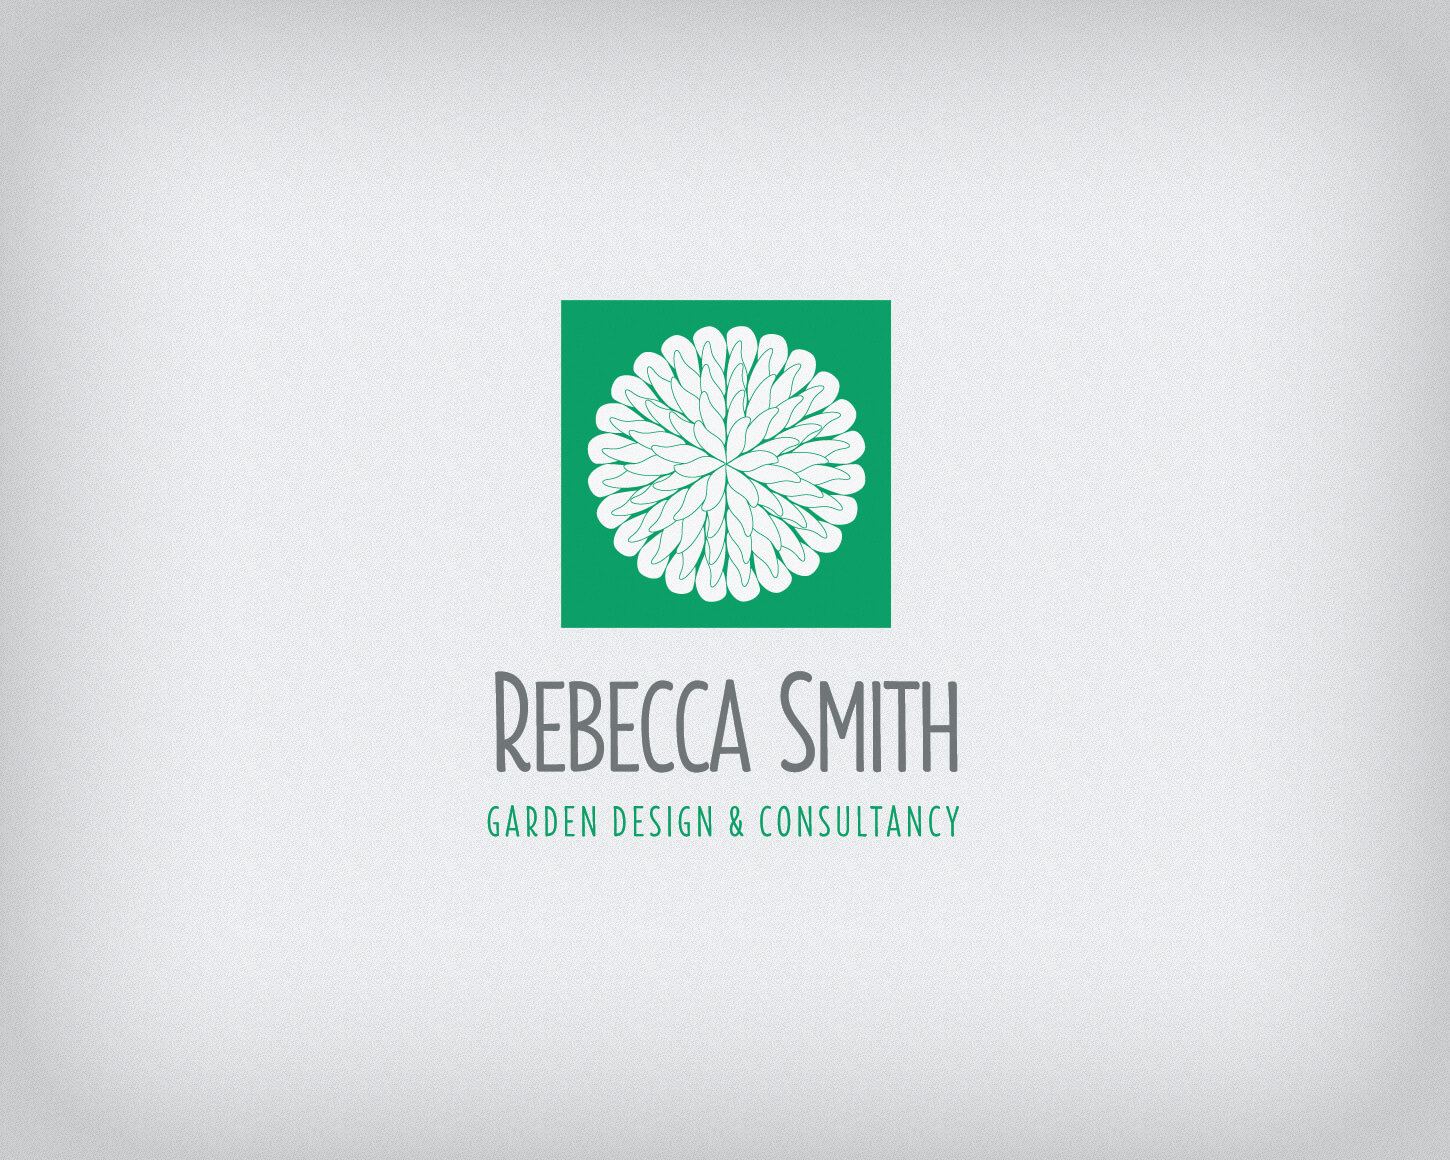 Rebecca Smith Garden Design branding